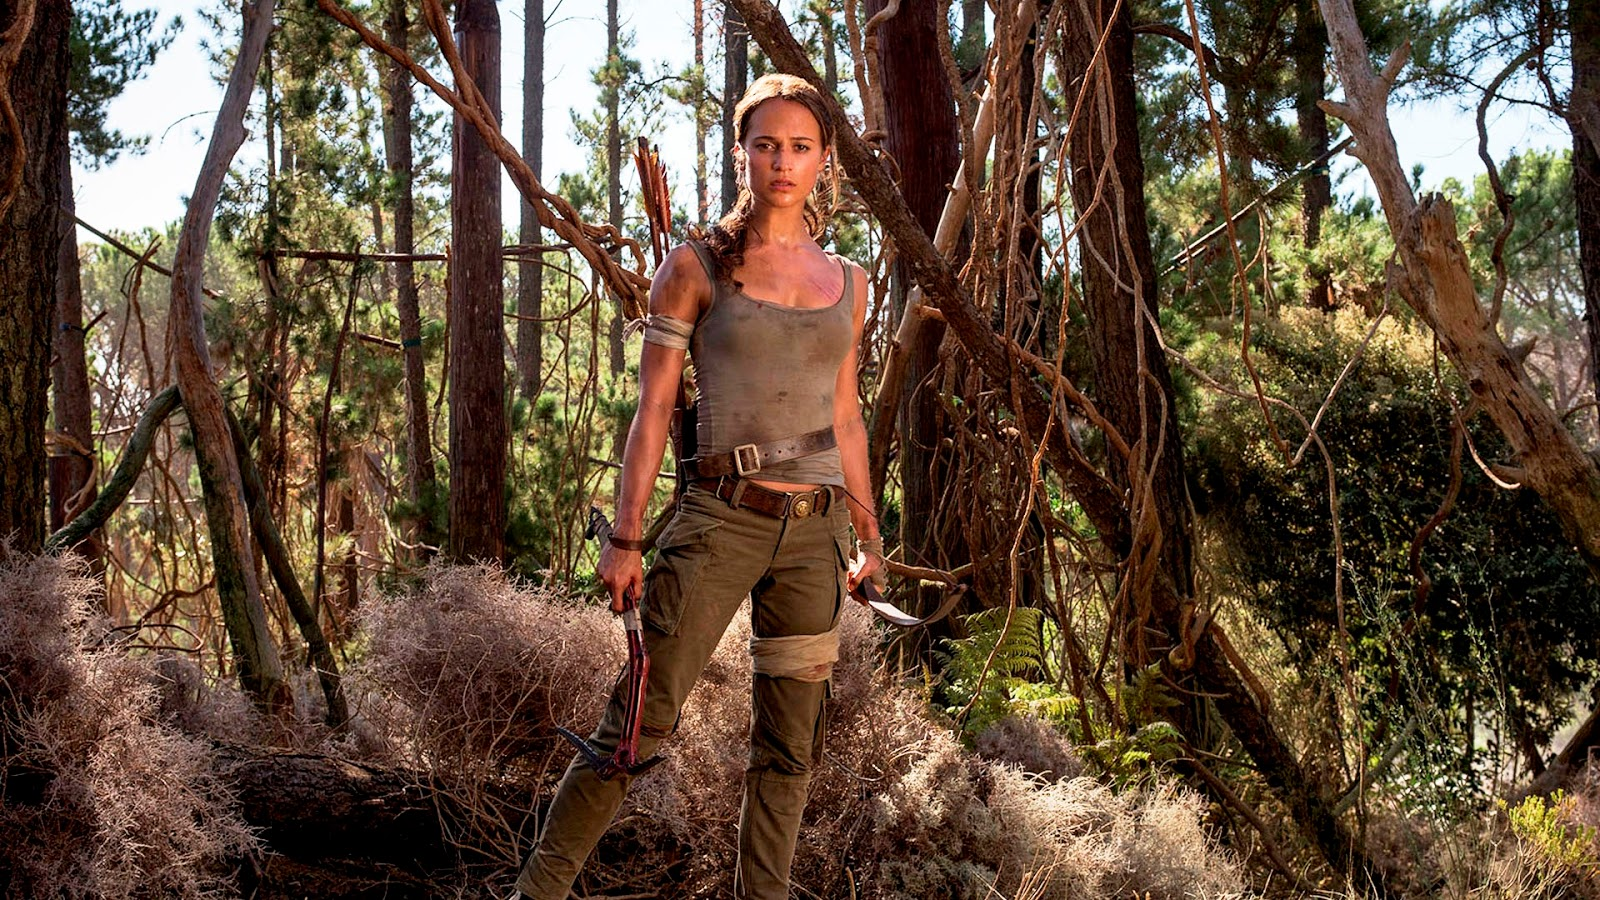 Tomb Raider is an action-adventure shooting game, first released in , has captured the attention of millions of fans. Lara Croft became so popular, a movie has to be made. With three best-selling predecessors to live up to, this new Tomb Raider game is set to release in December